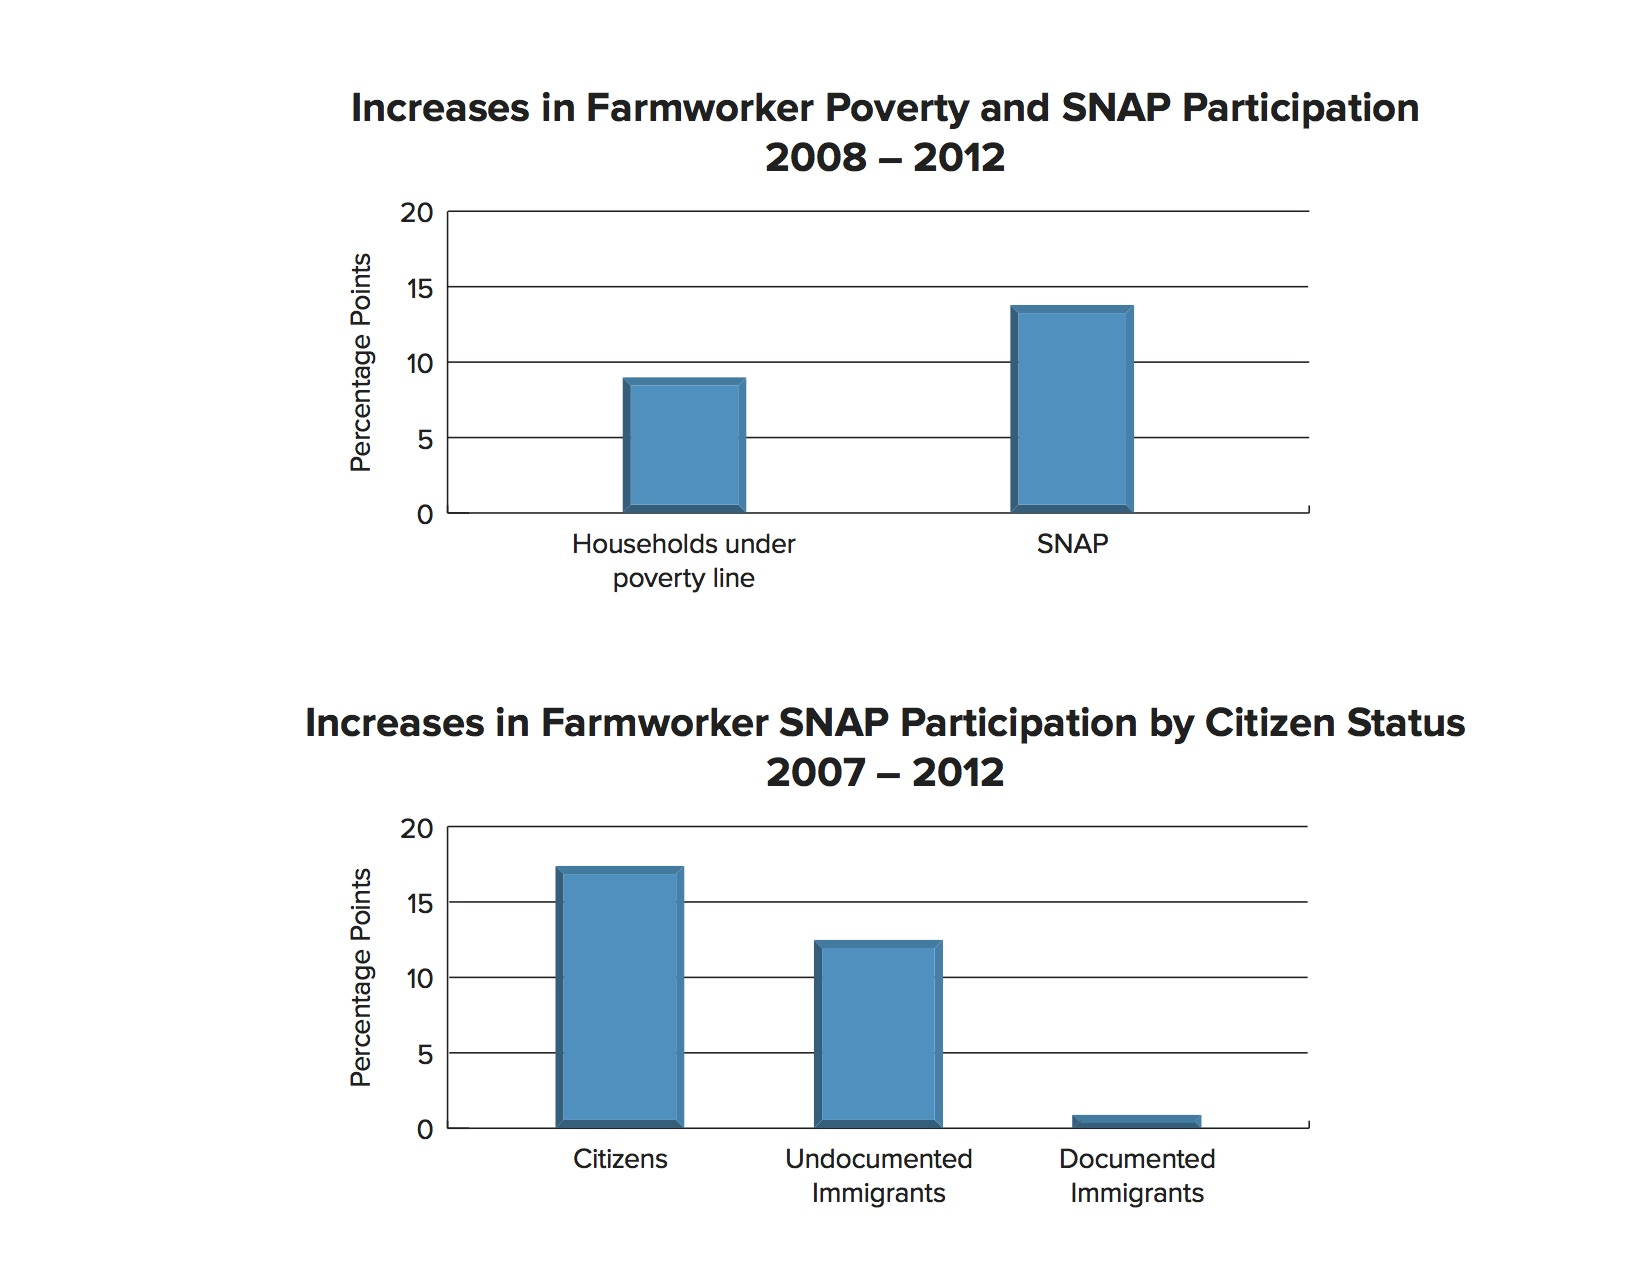 Increase in SNAP farmworker household participation